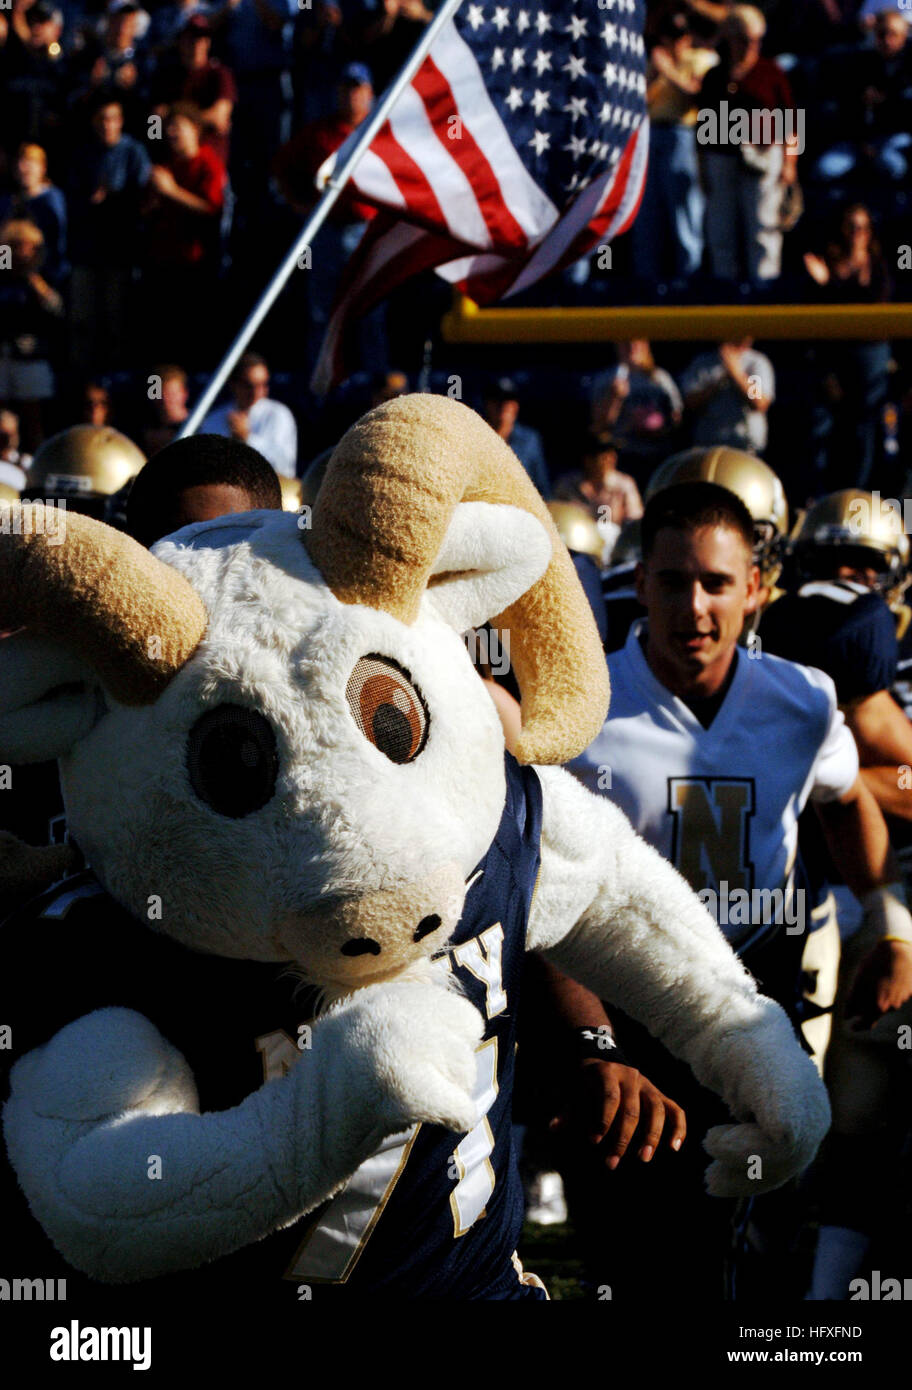 051105-N-9693M-003 Annapolis, MD (Nov. 5, 2005) The U.S. Naval Academy Mascot 'Bill' the goat leads the - Stock Image